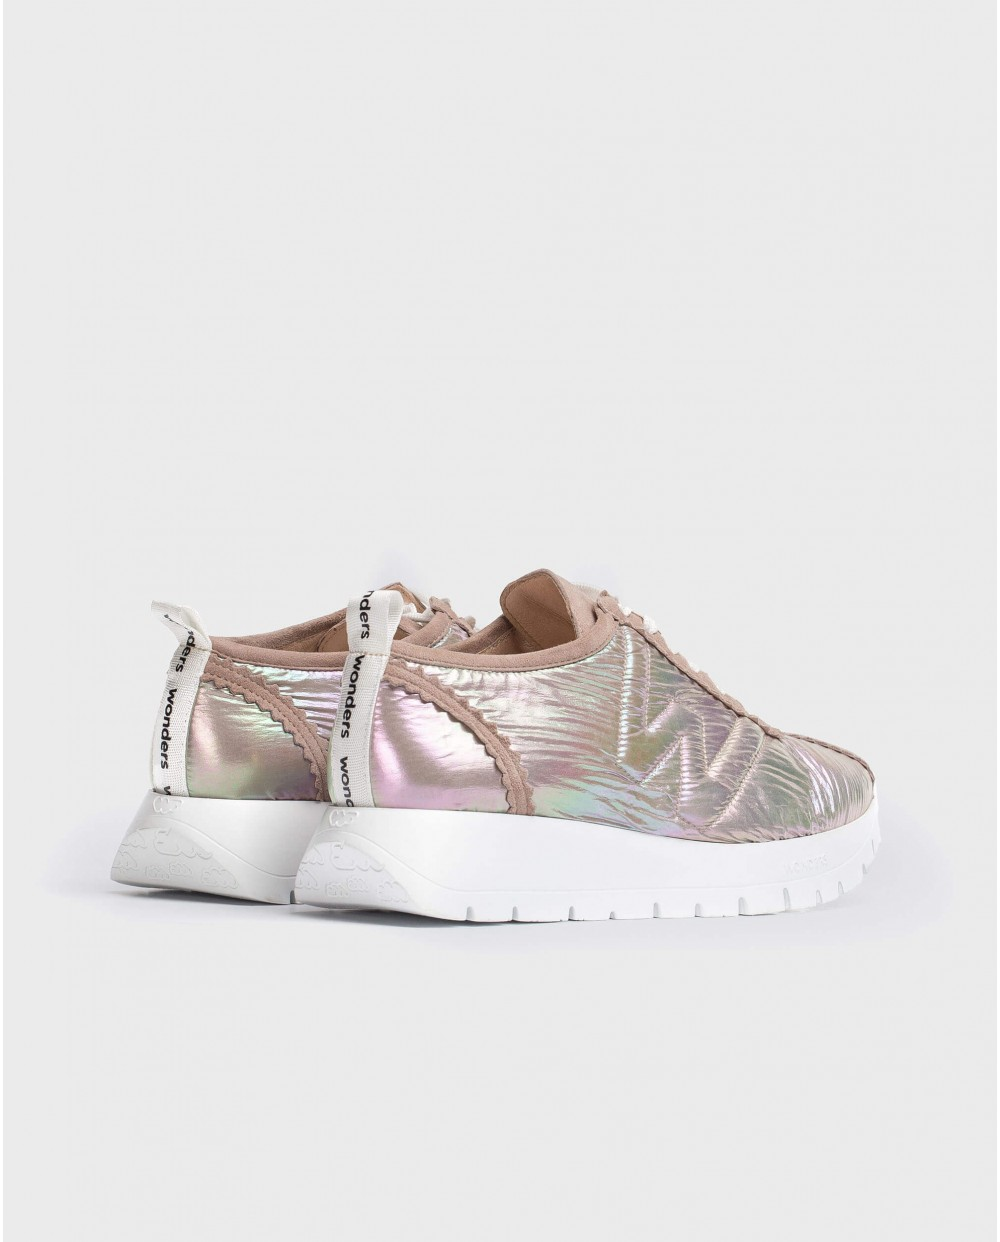 Wonders-Outlet-Sneaker with shoelaces